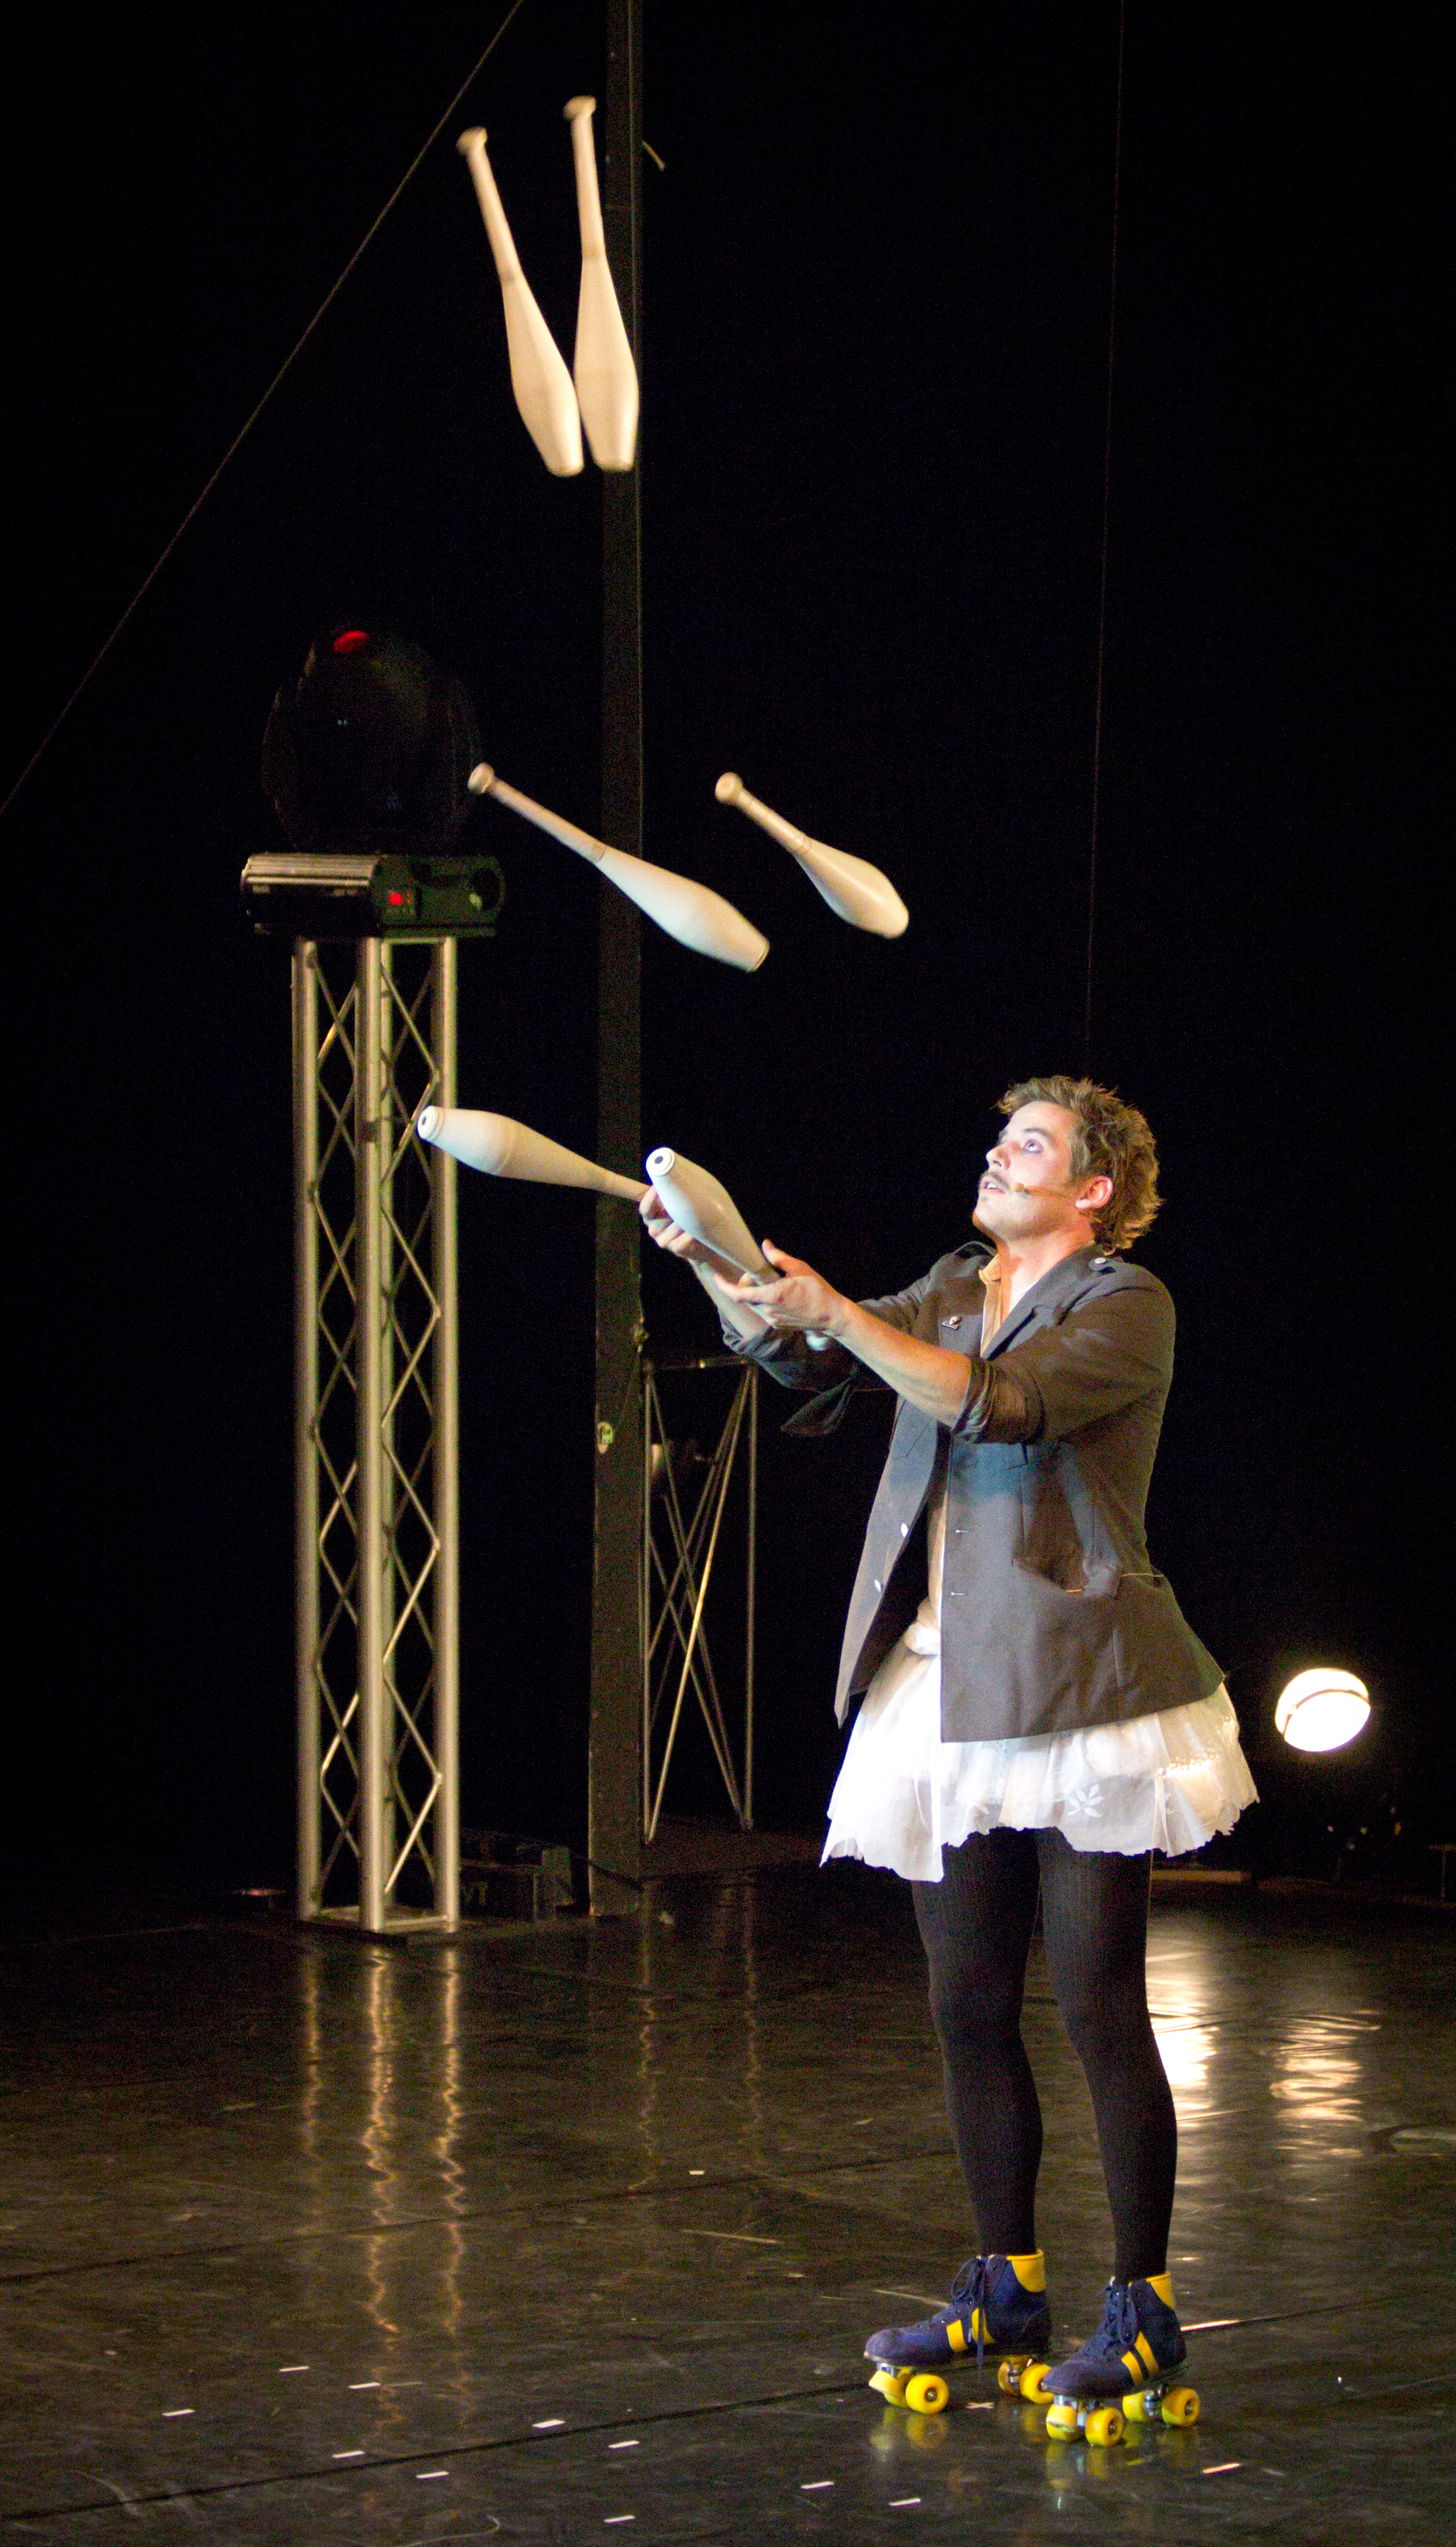 Berlin Juggling Convention 2013 Gala Show: Matthias Romir.